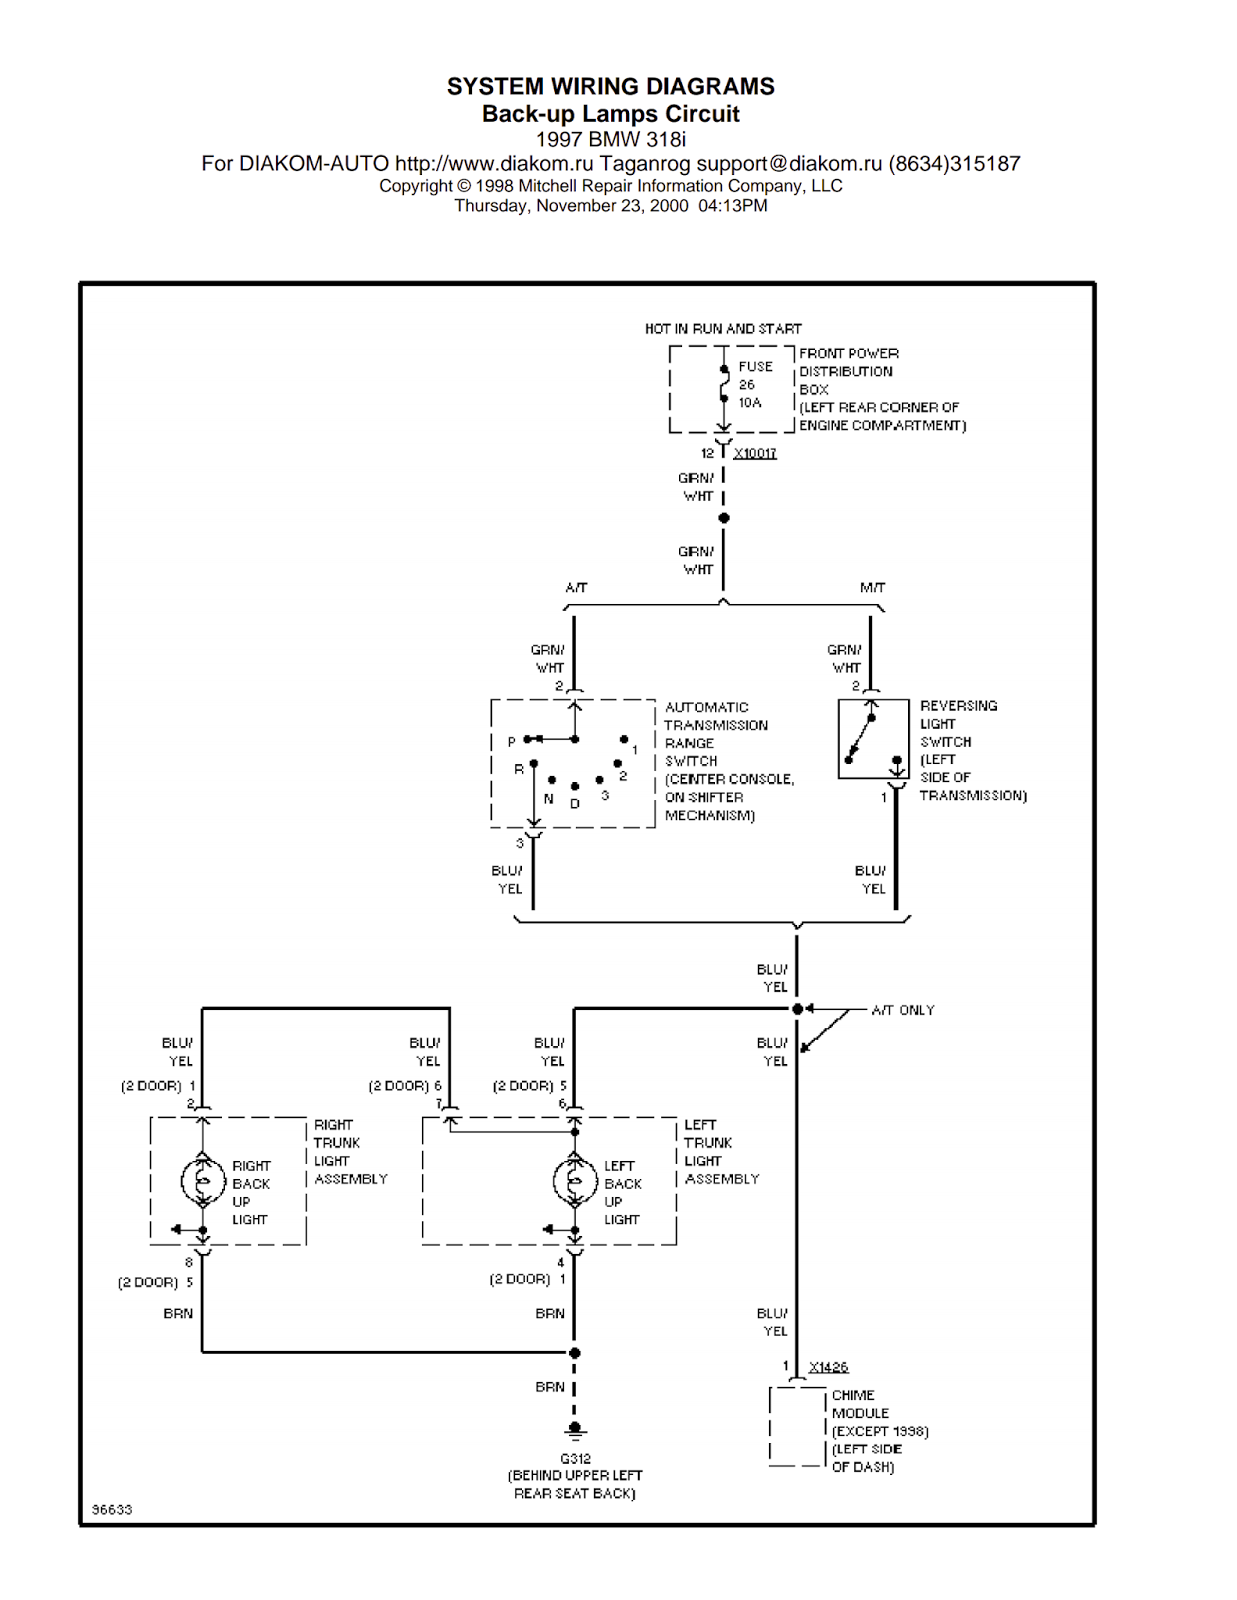 1997 bmw 528i wiring diagram 99 bmw 528i wiring diagram wiring diagrams and free manual ebooks: 1997 bmw 318i back ...